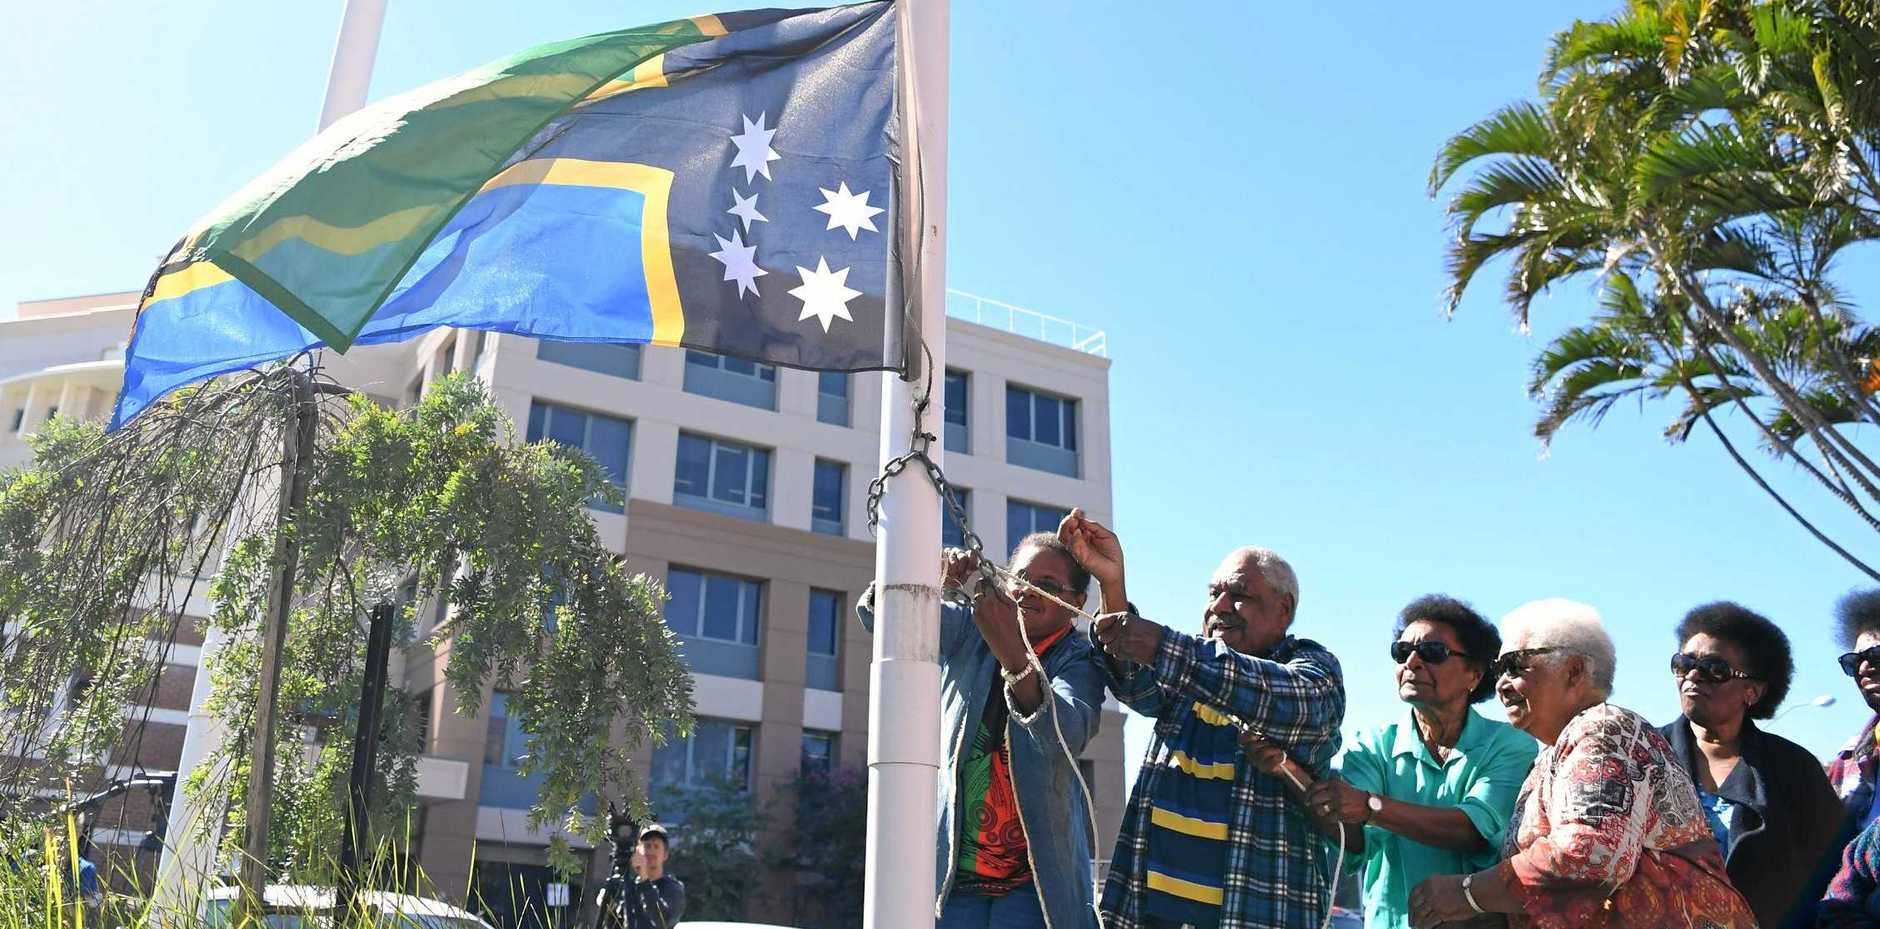 PROUD: Elders raise the flag at celebrations to mark 25 years since the Federal Government officially recognised ASSI as a distinct cultural group